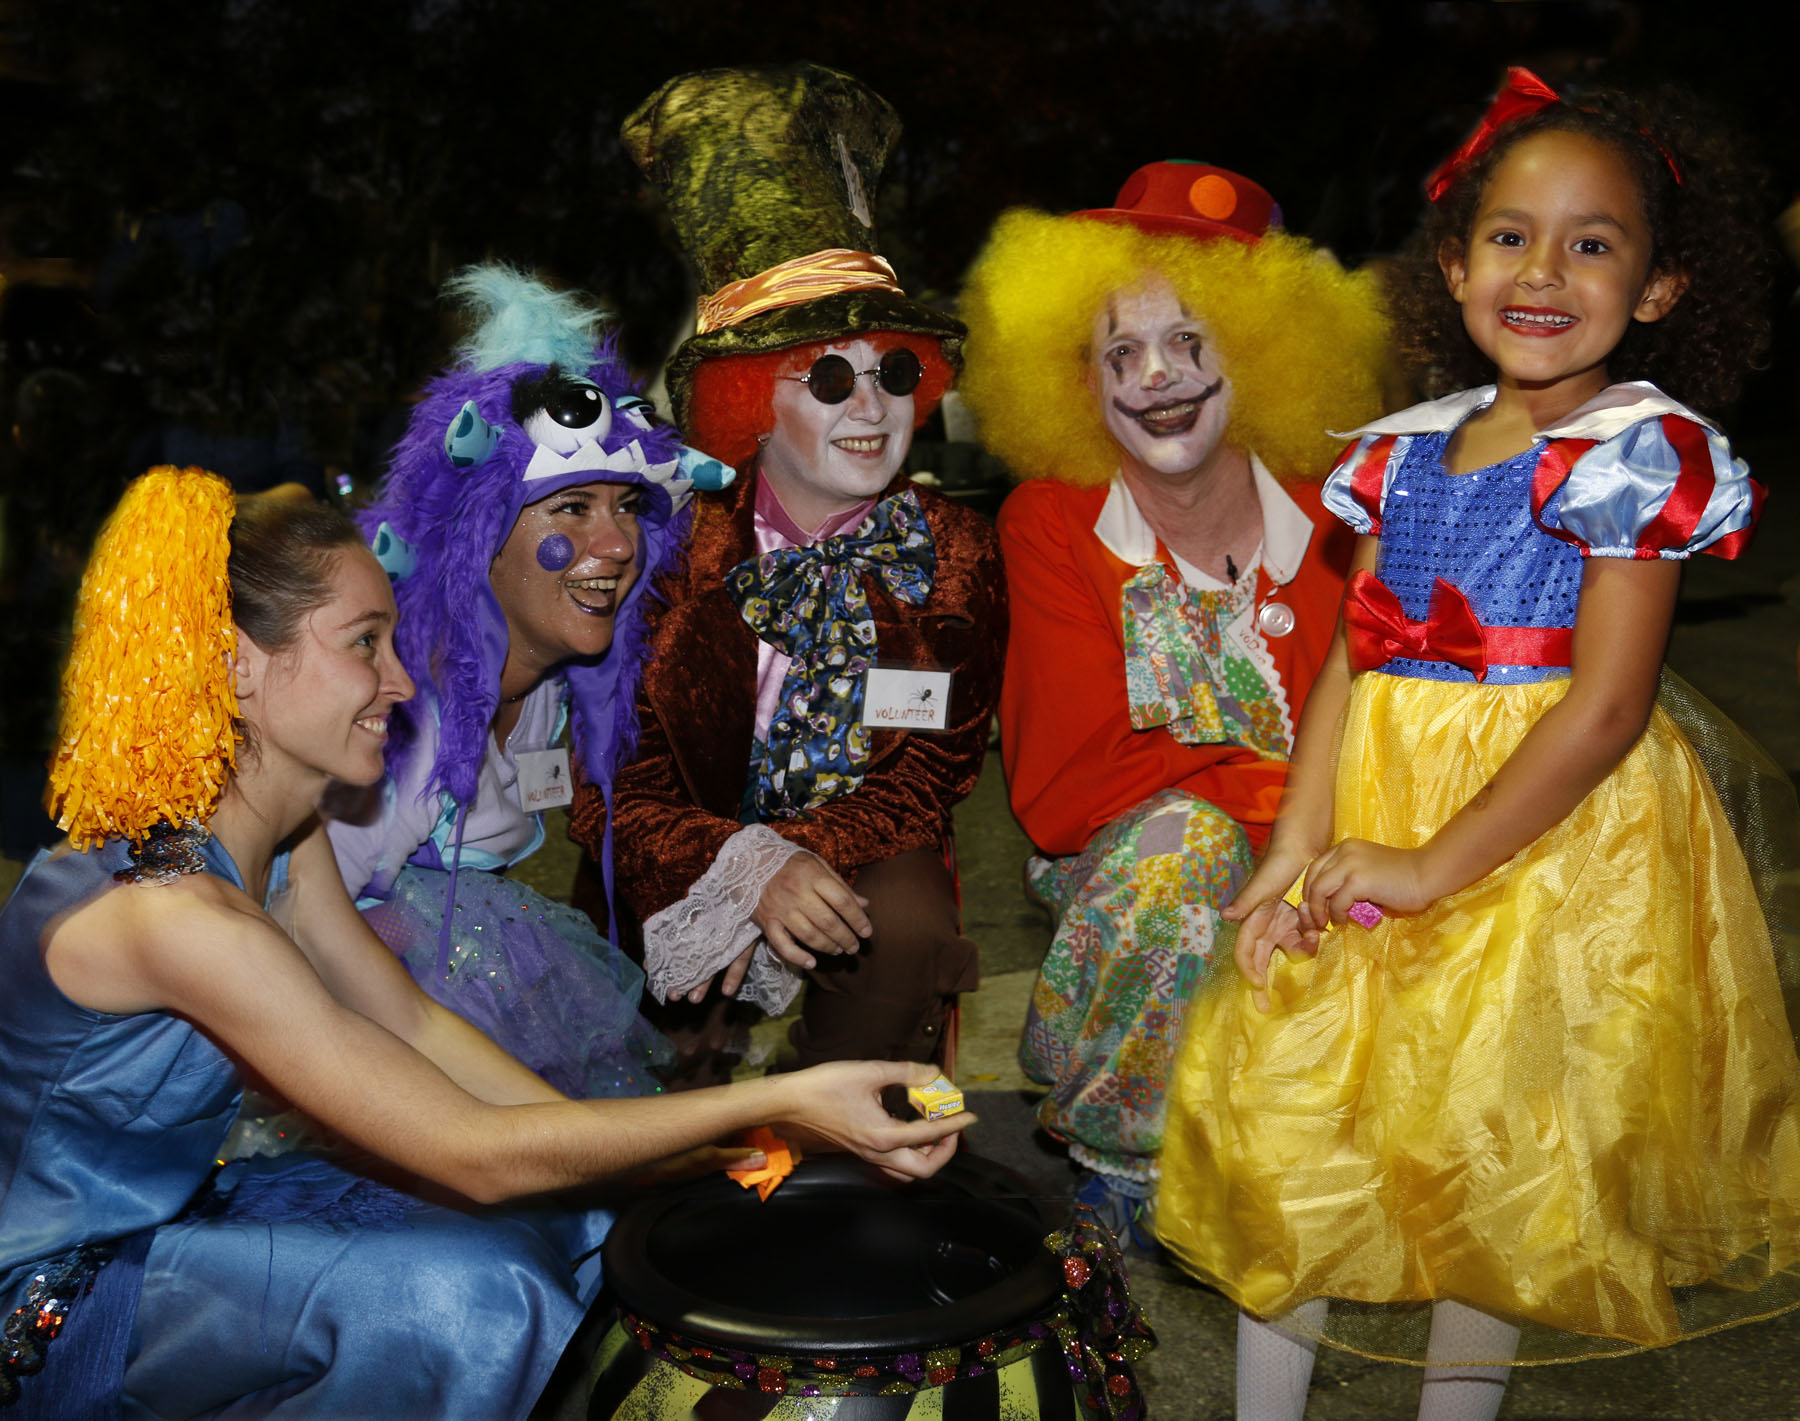 halloween nights are a naturally spooky time at dallas zoo | dallas